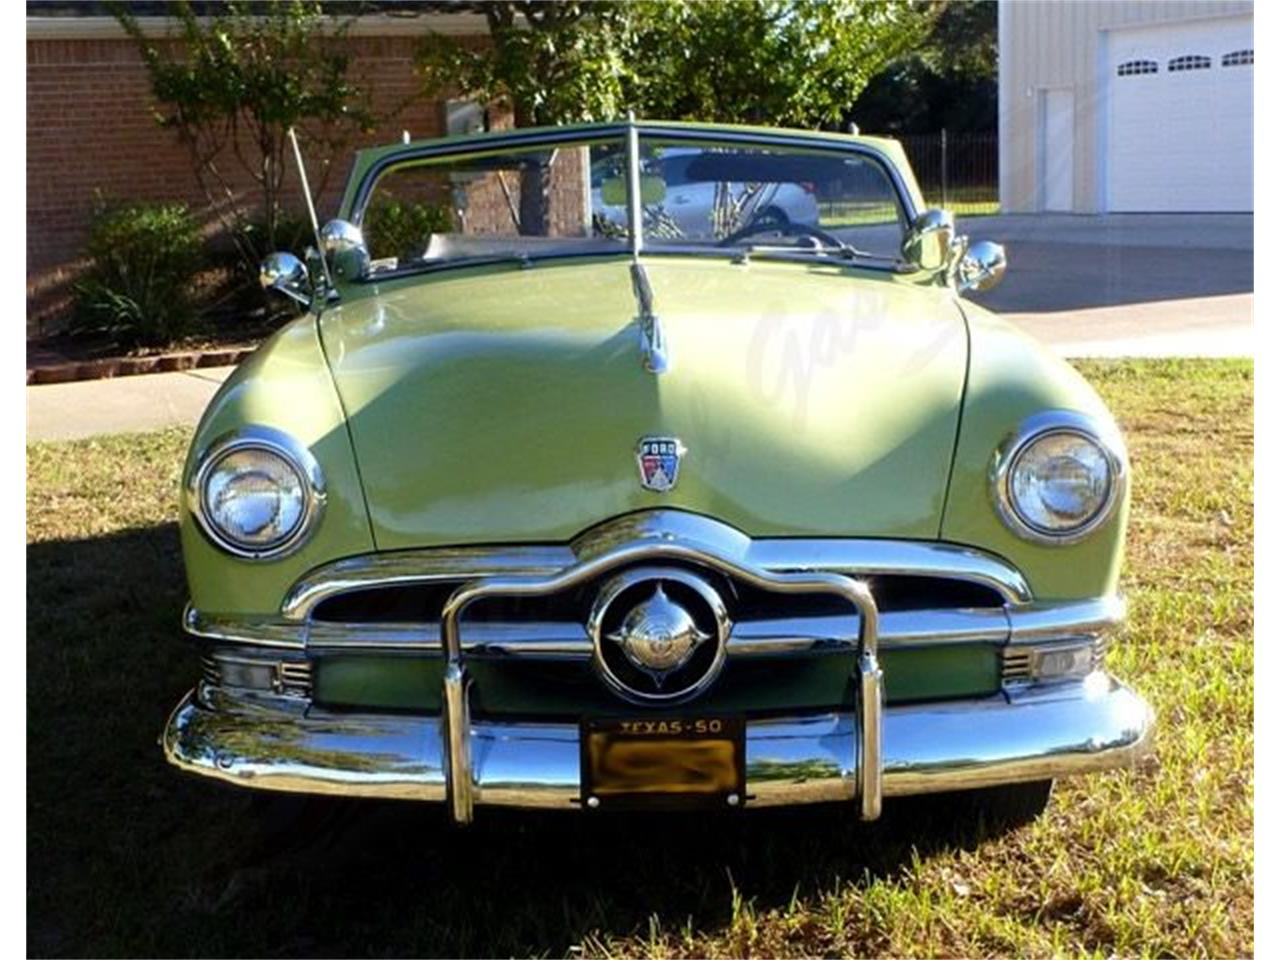 1950 Ford Convertible for Sale | ClassicCars.com | CC-10376141950s Cars For Sale Texas